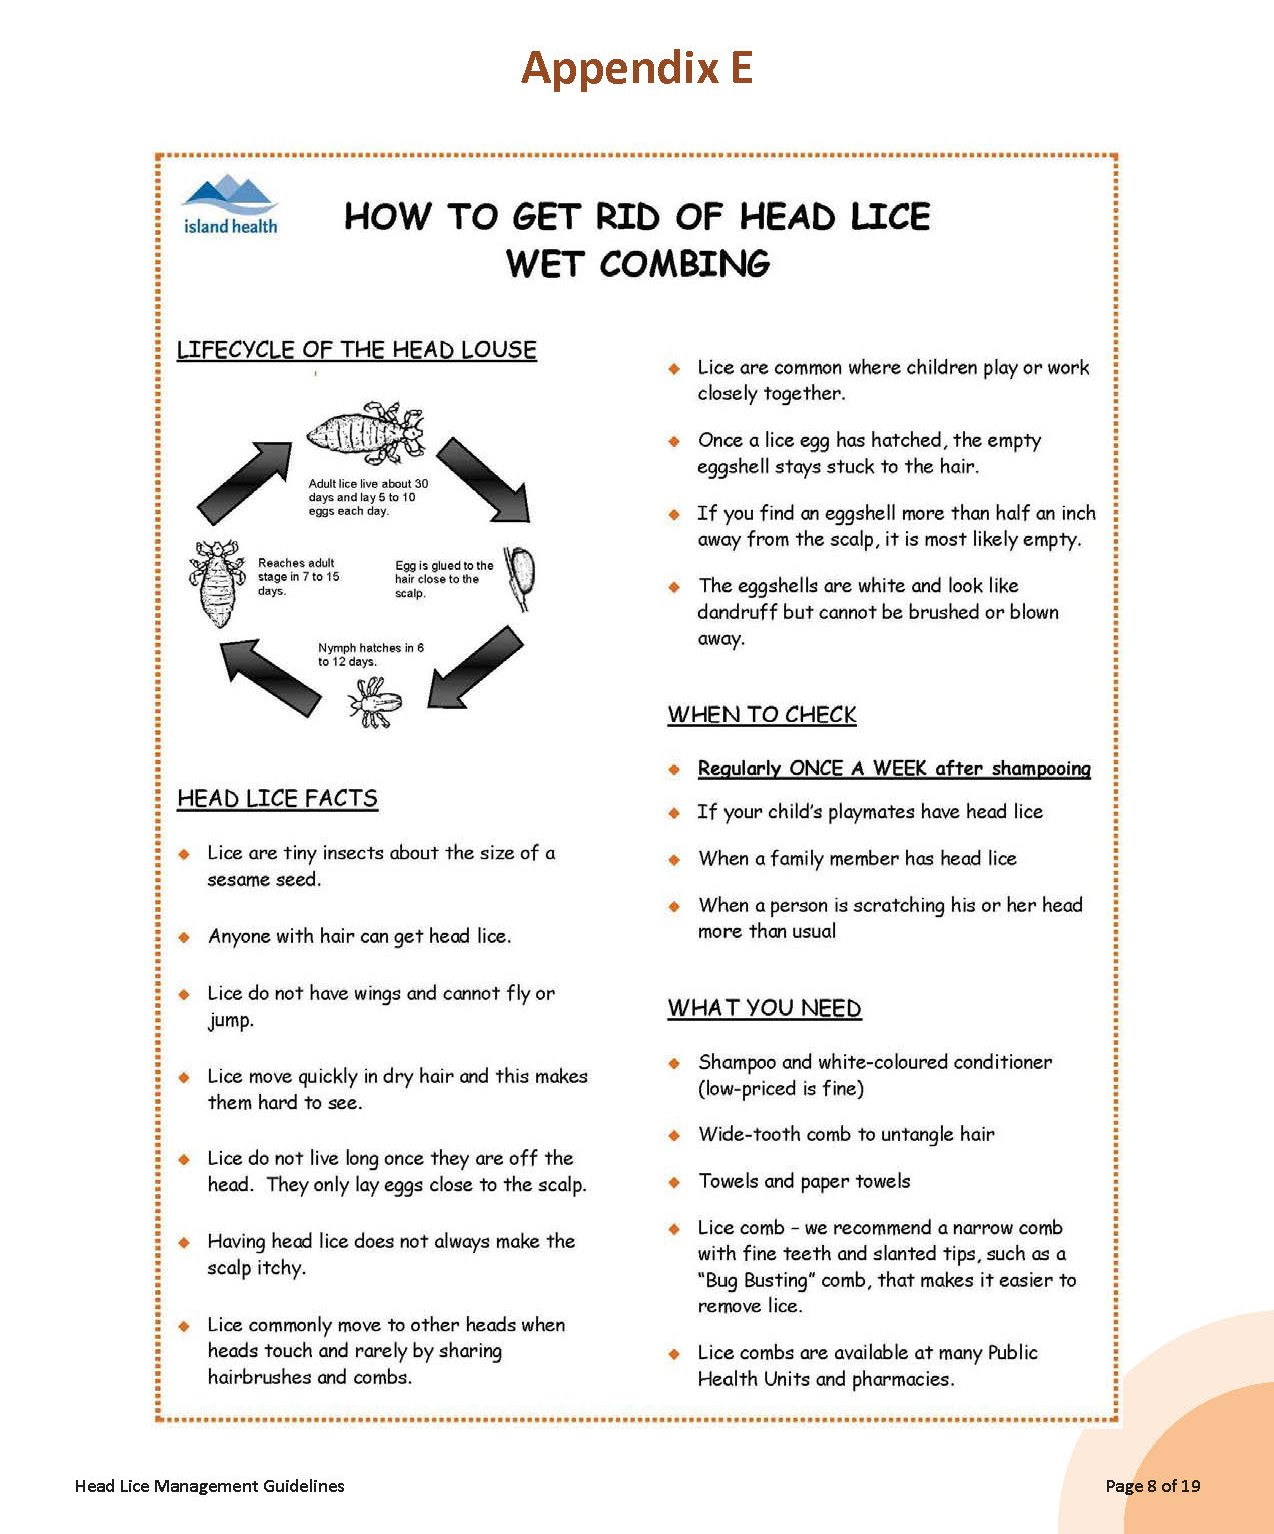 head-lice-management-guidelines-wh-pdf-5_page_1